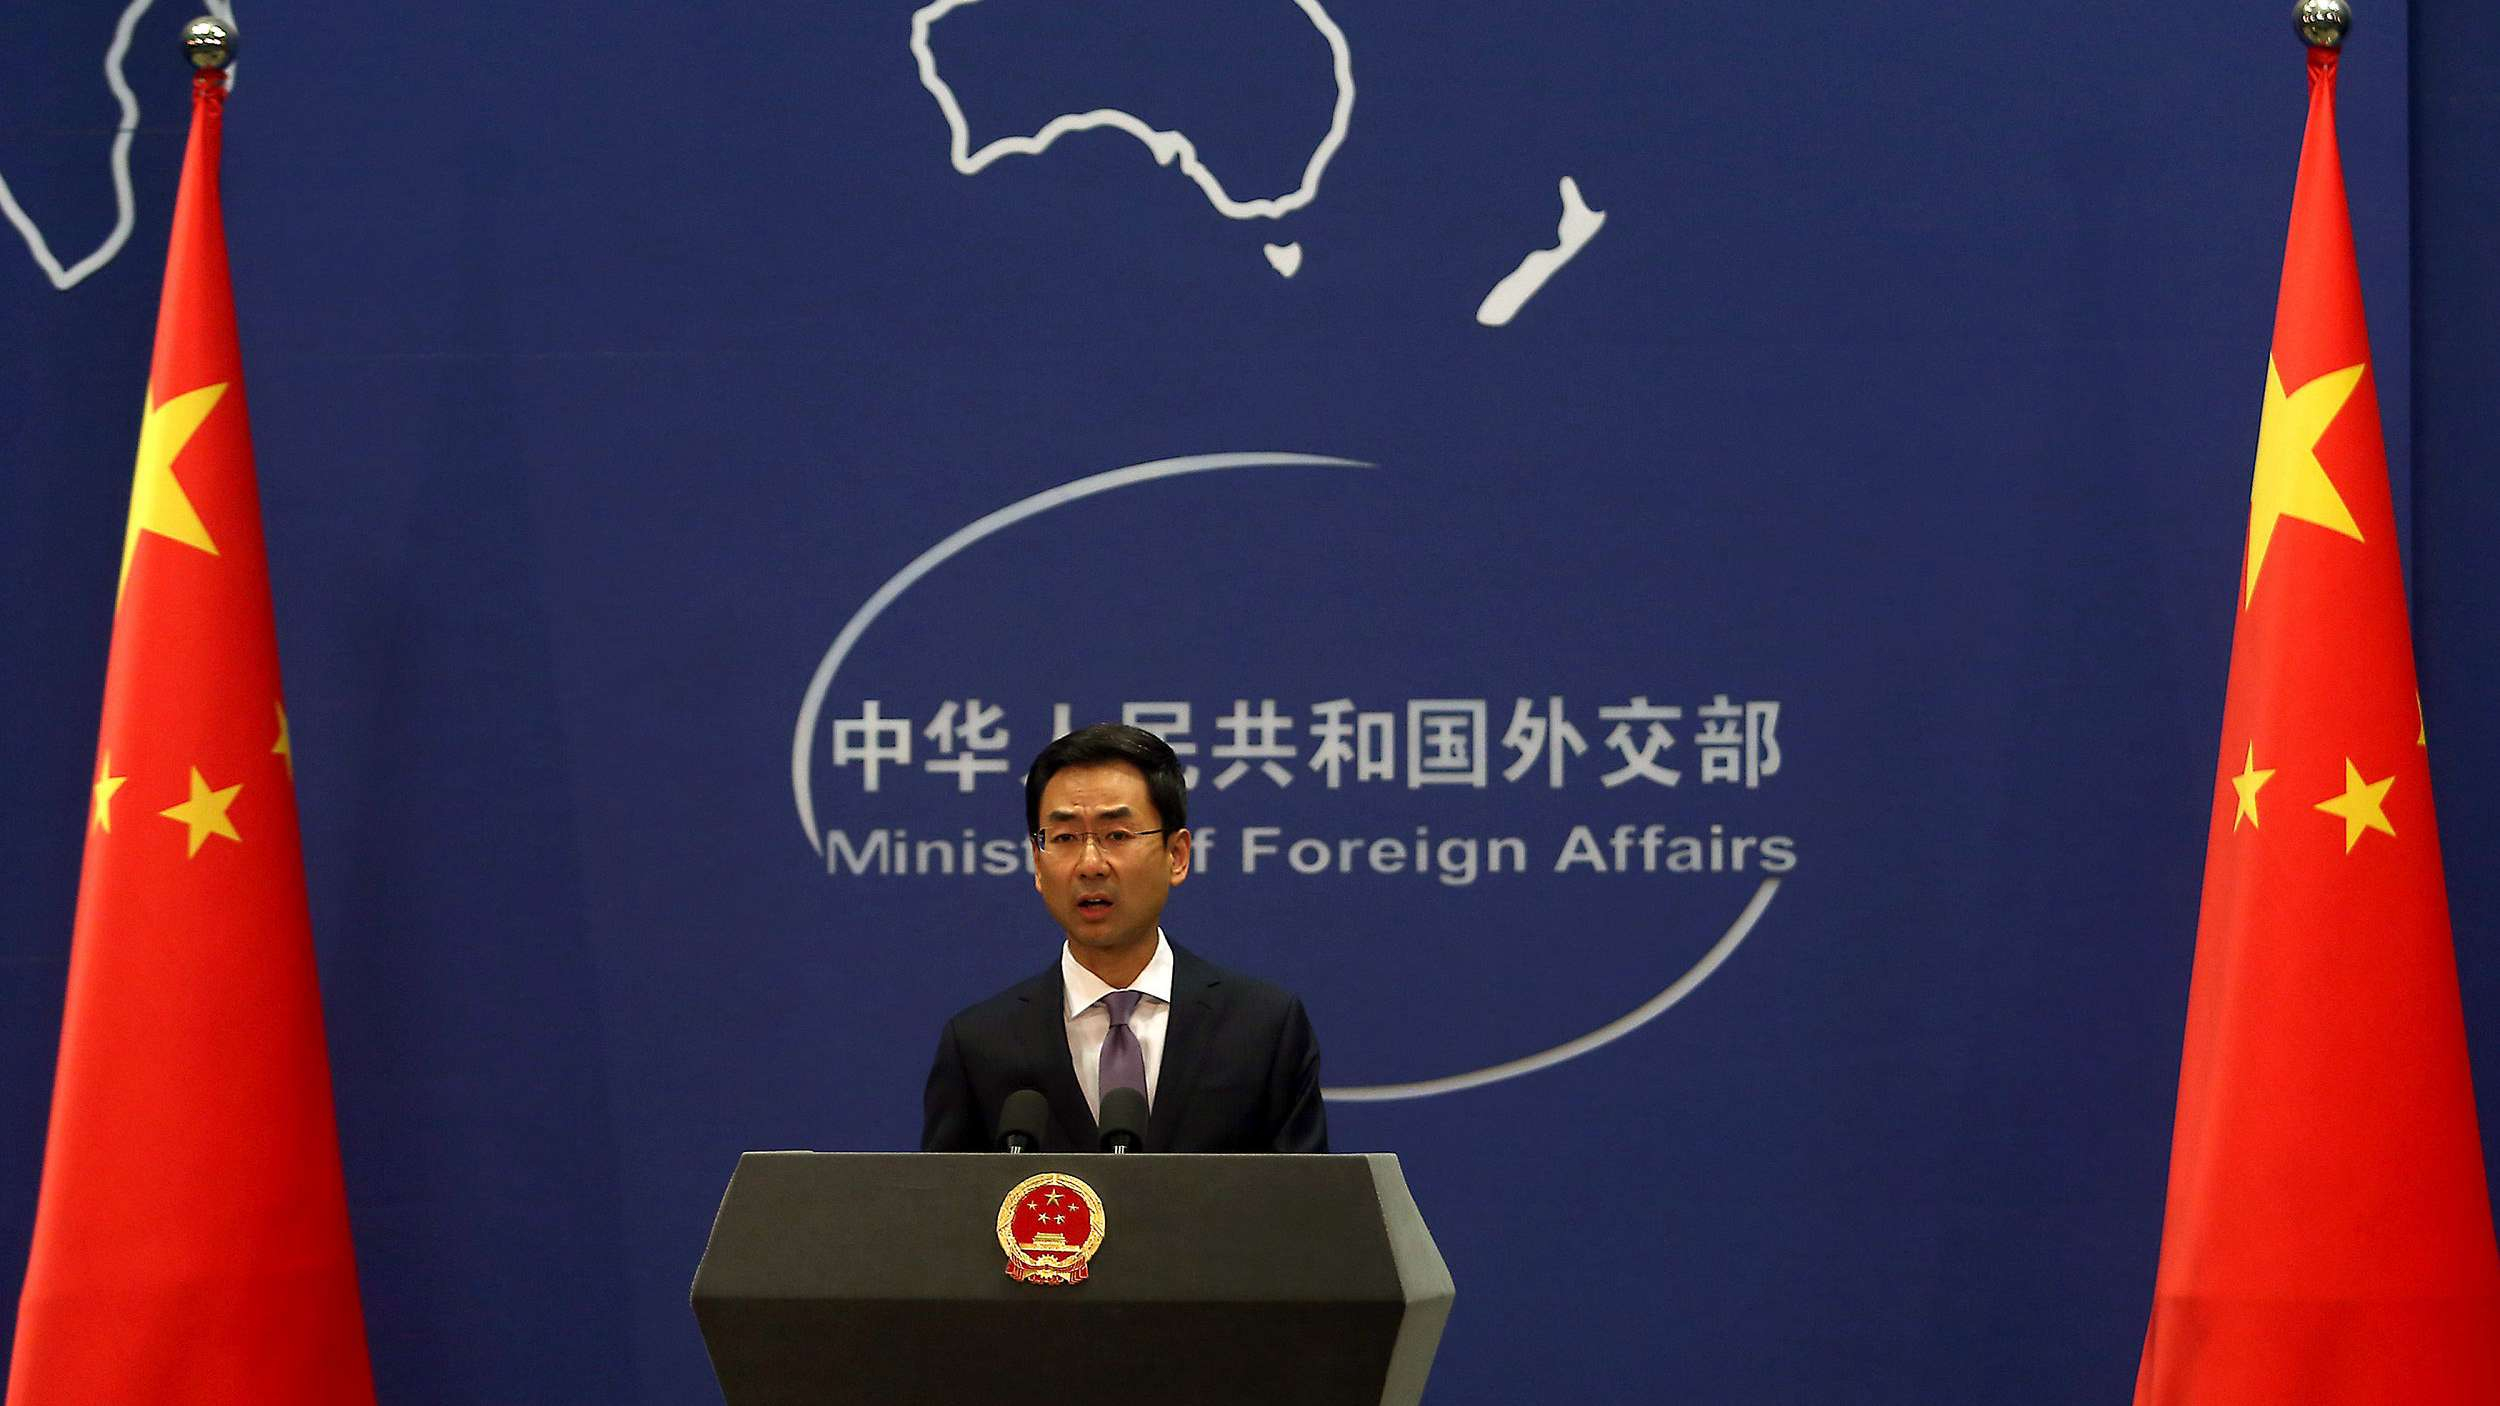 MOFA: China has no desire to boost exports through competitive devaluation